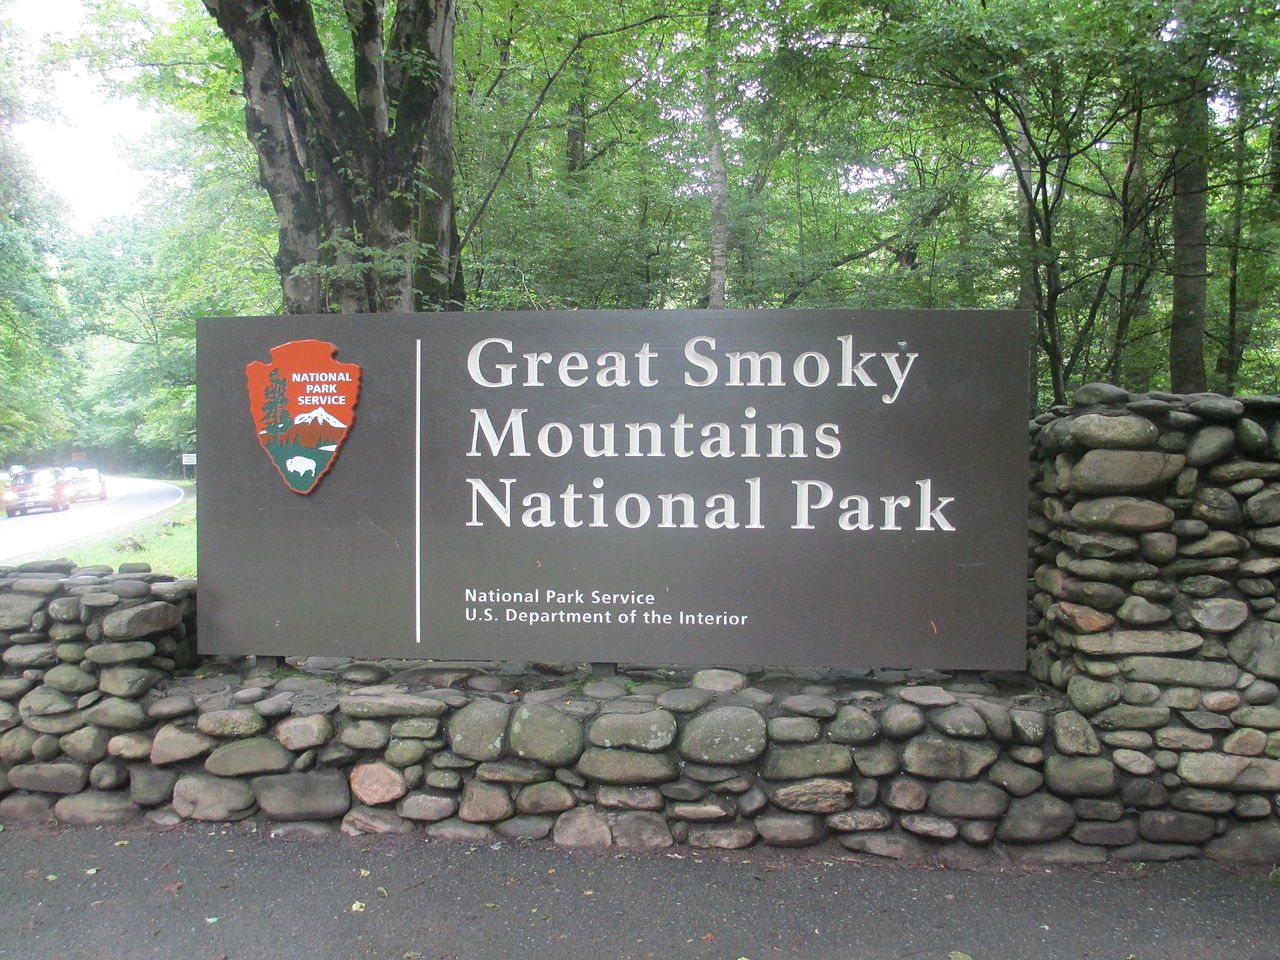 Best Visiting Place In North Carolina-Great Smoky Mountains National Park